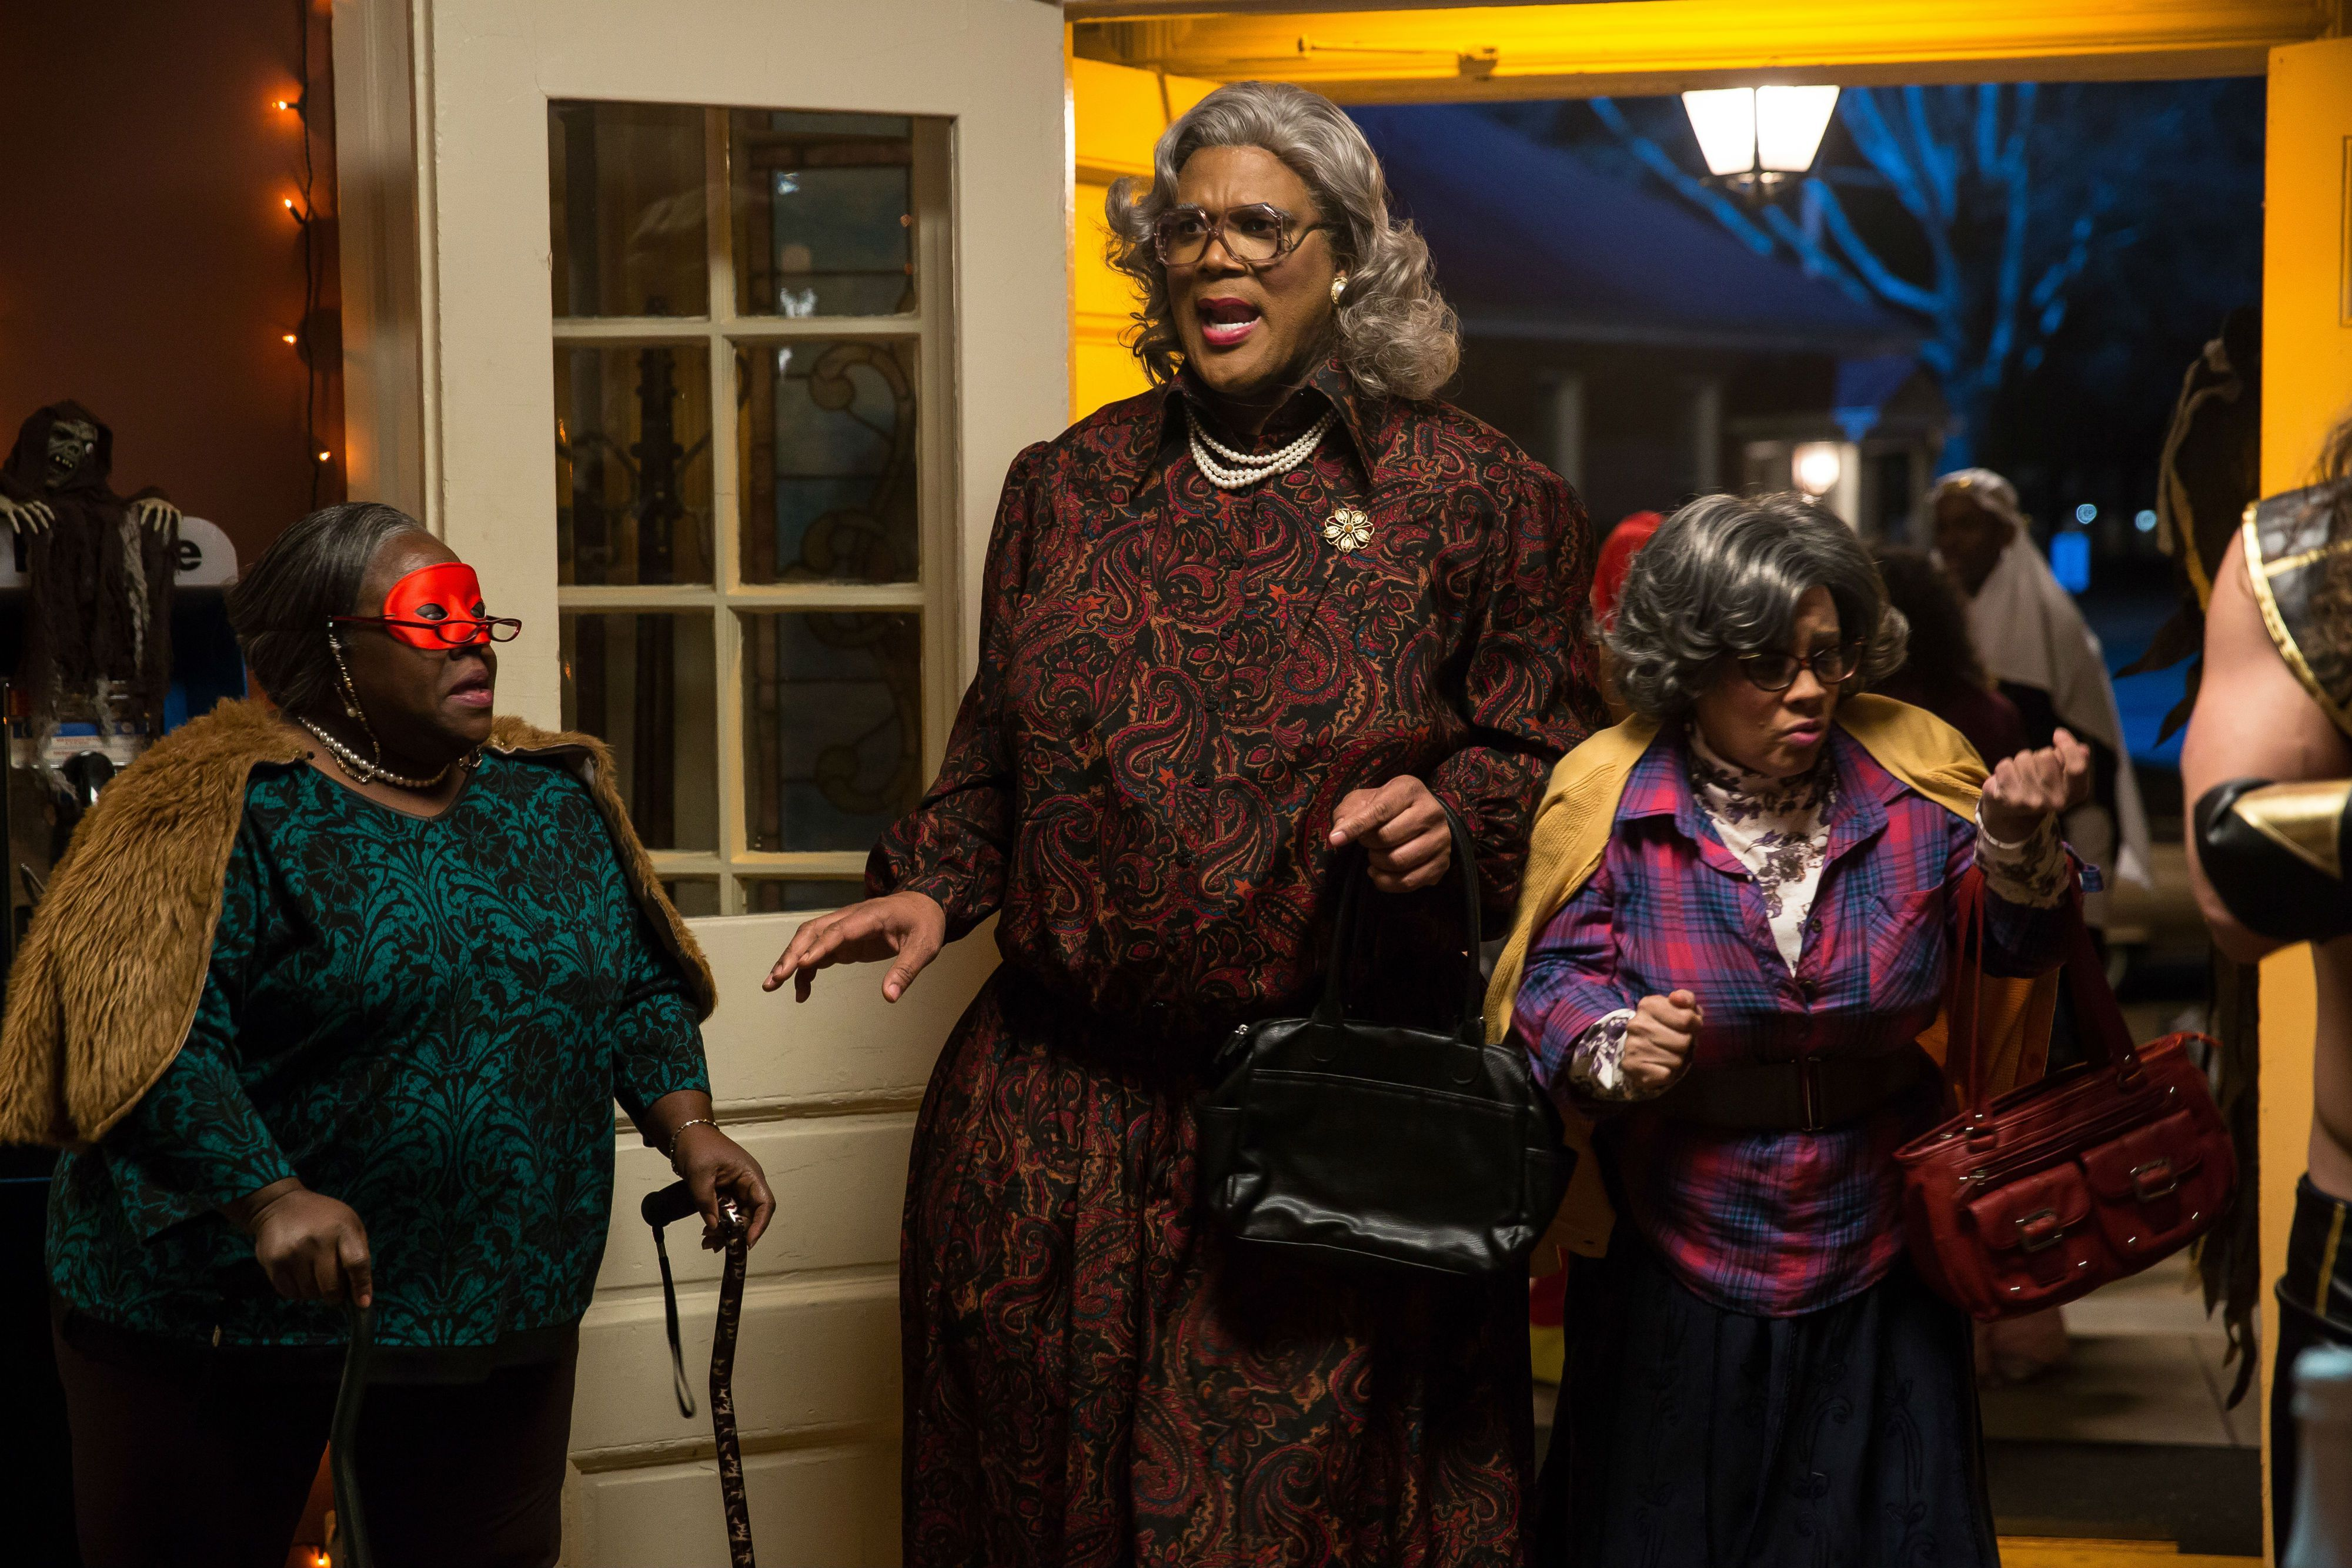 NOT ANOTHER MADEA MOVIE! Tough, crass, and always has